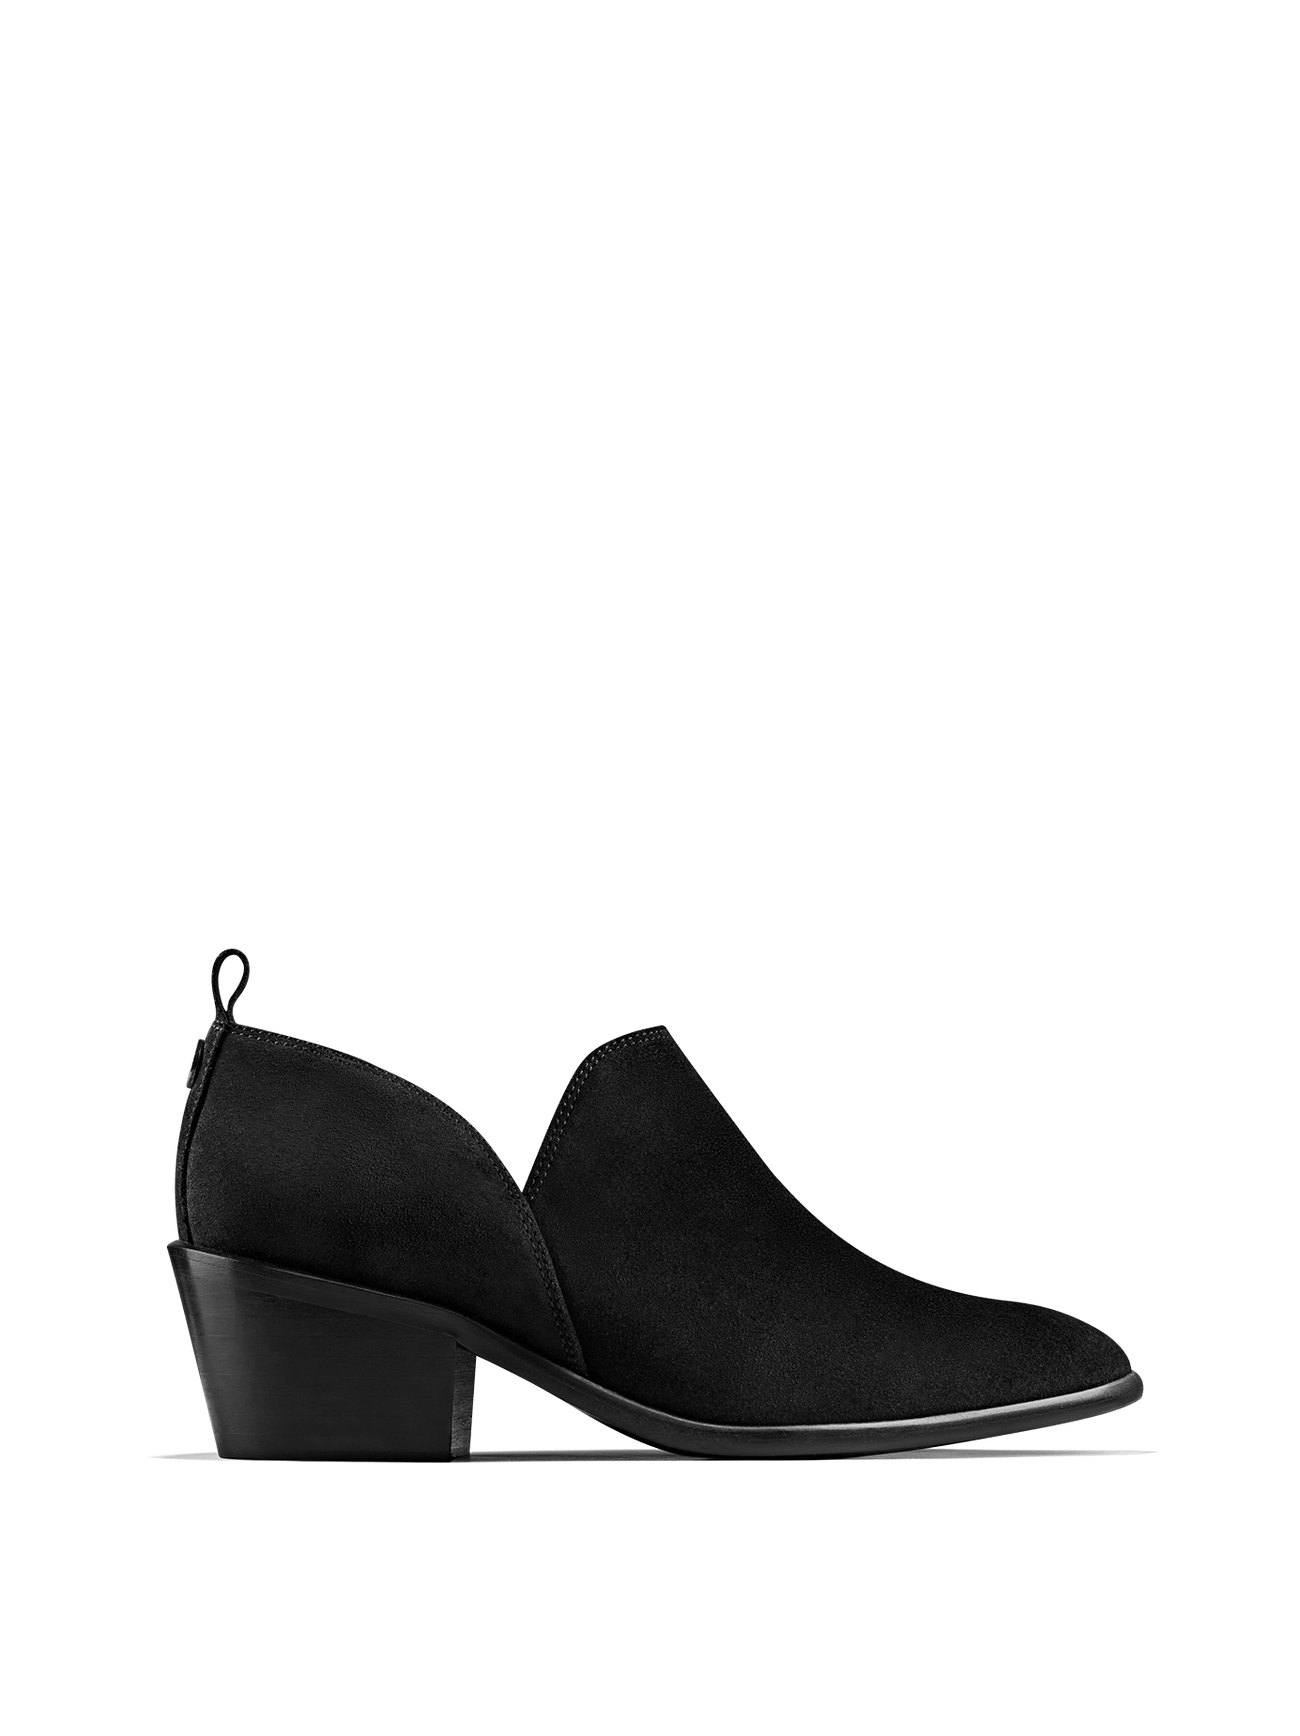 Avalon, a stylish shoe bootie slip on, in soft black suede.